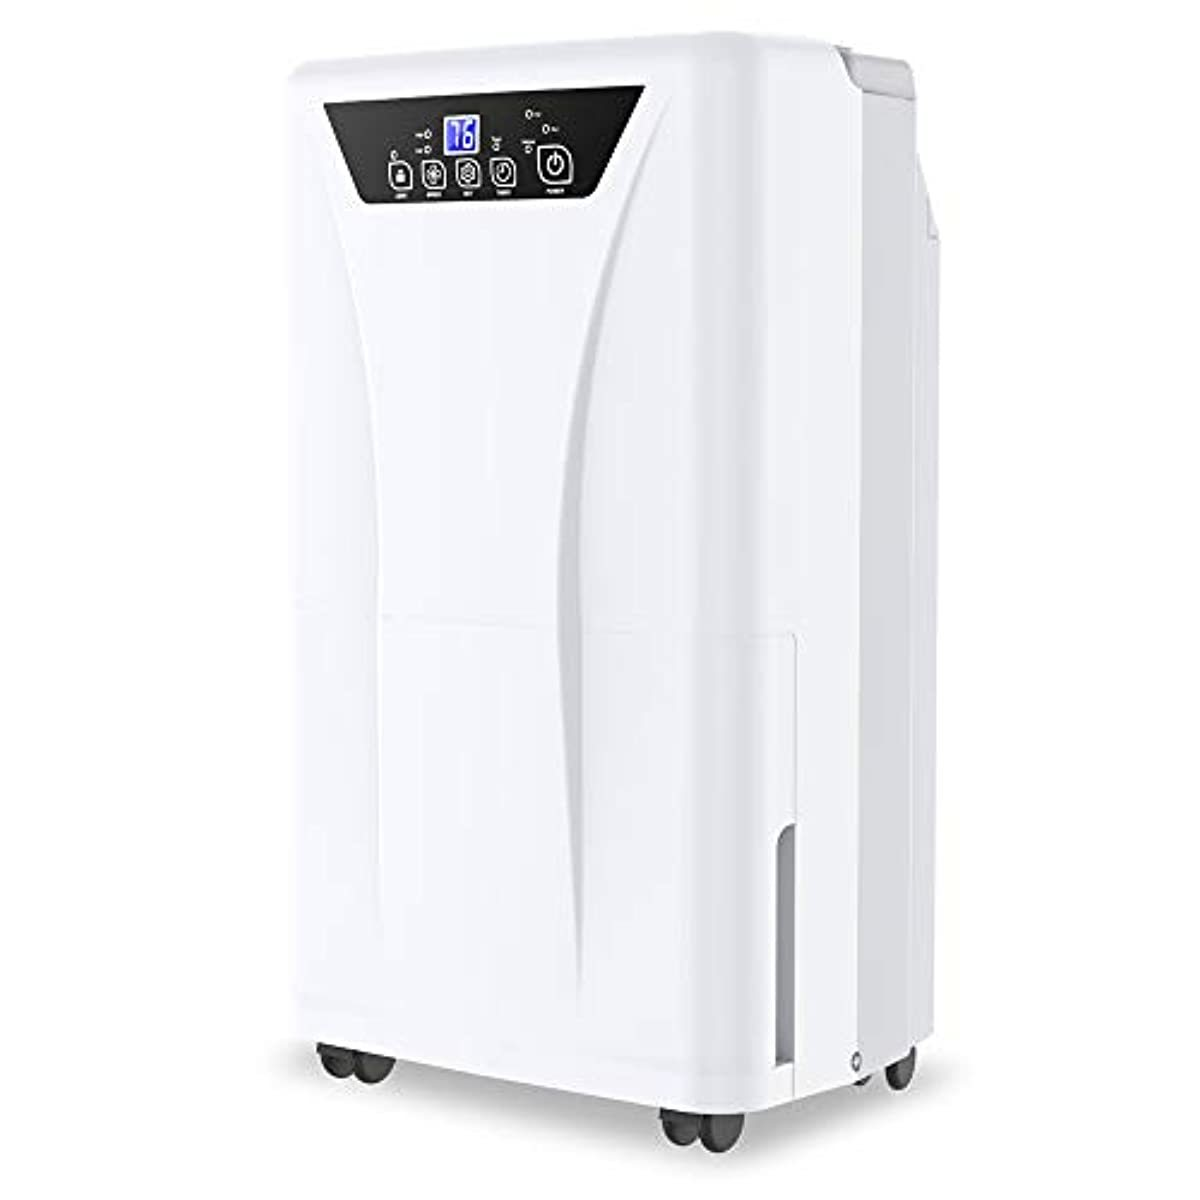 Kesnos 2500 Sq. Ft Dehumidifier for Home and Basements with Drain Hose